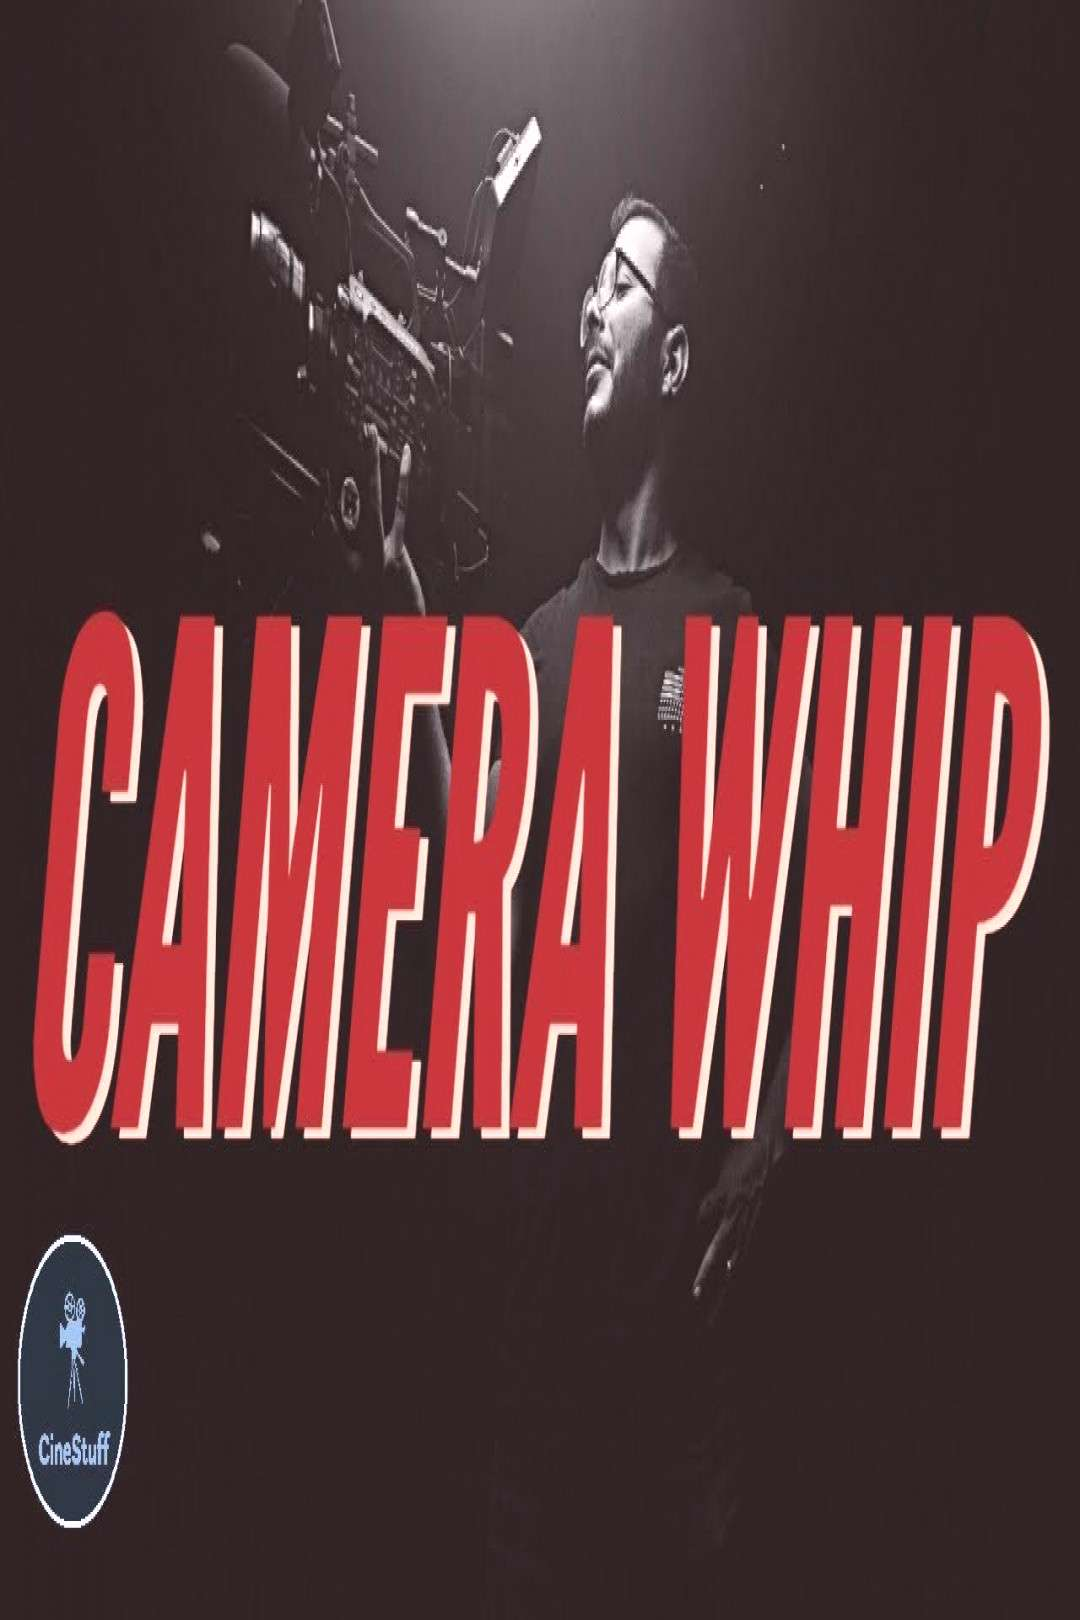 3 easy steps for awesome camera whips! - -